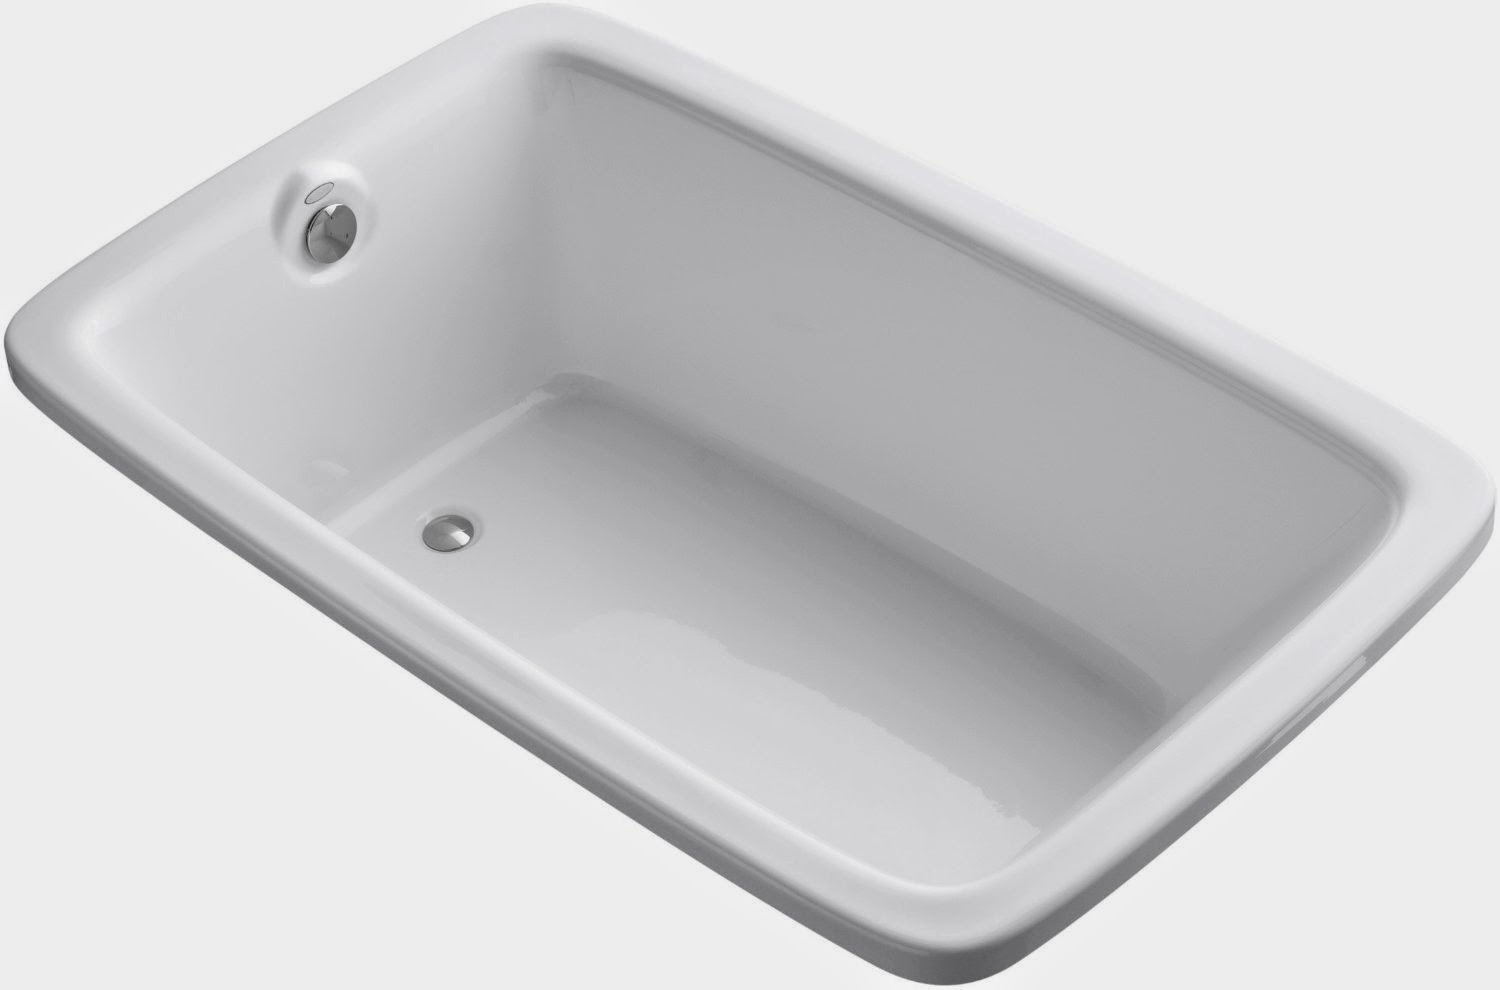 KOHLER K 1156 0 Bancroft Experience 5.5 Foot Drop In Bathtub, White